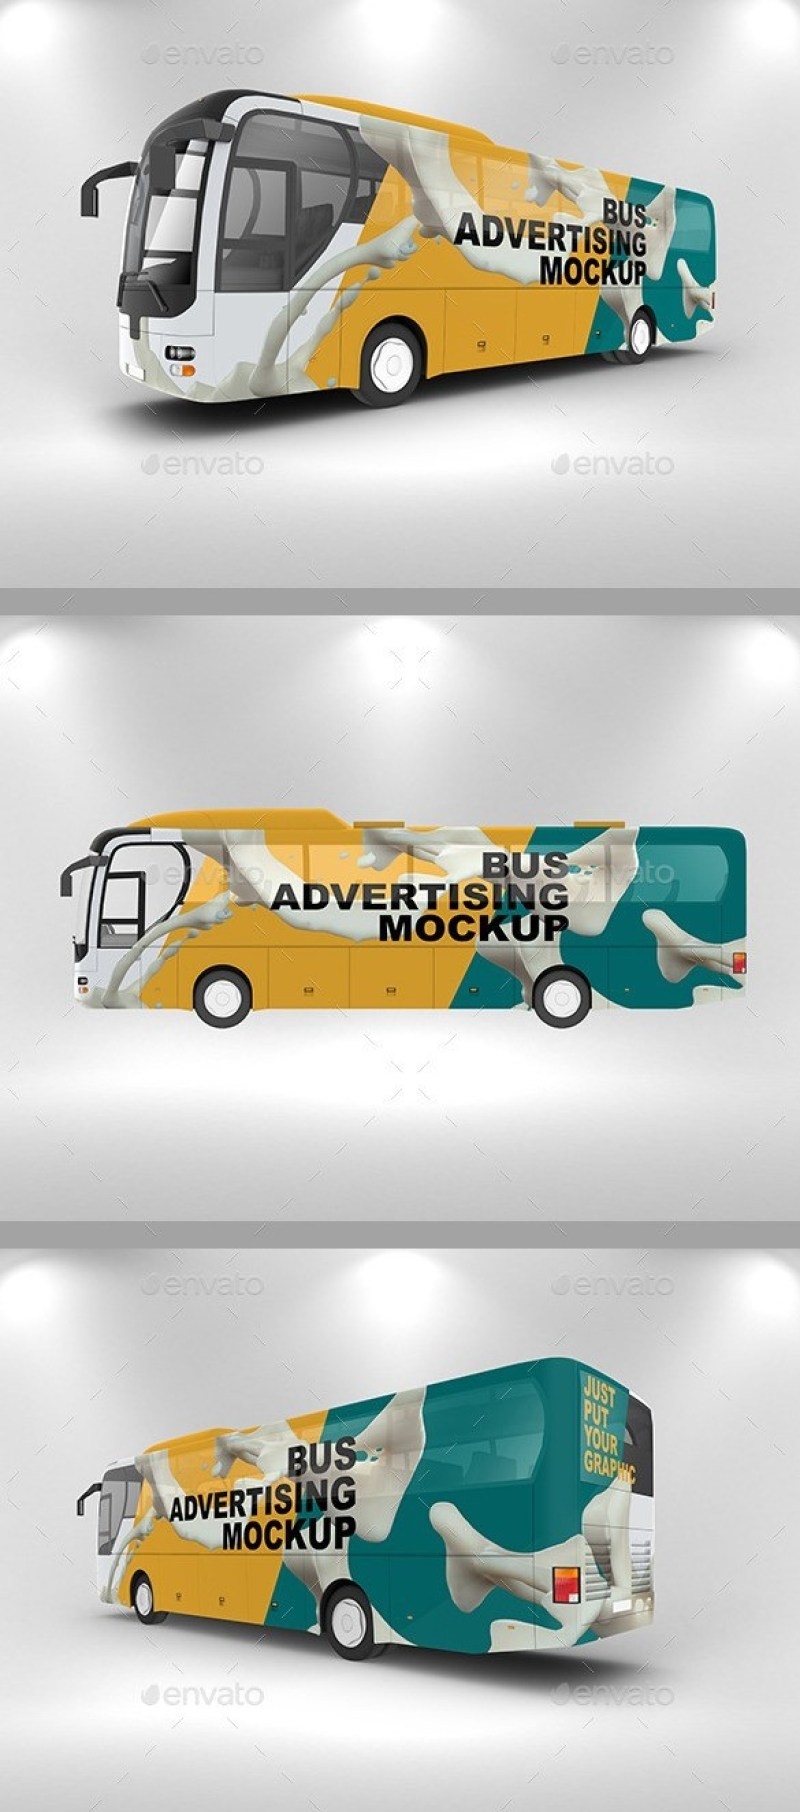 Bus Advertising Mockup